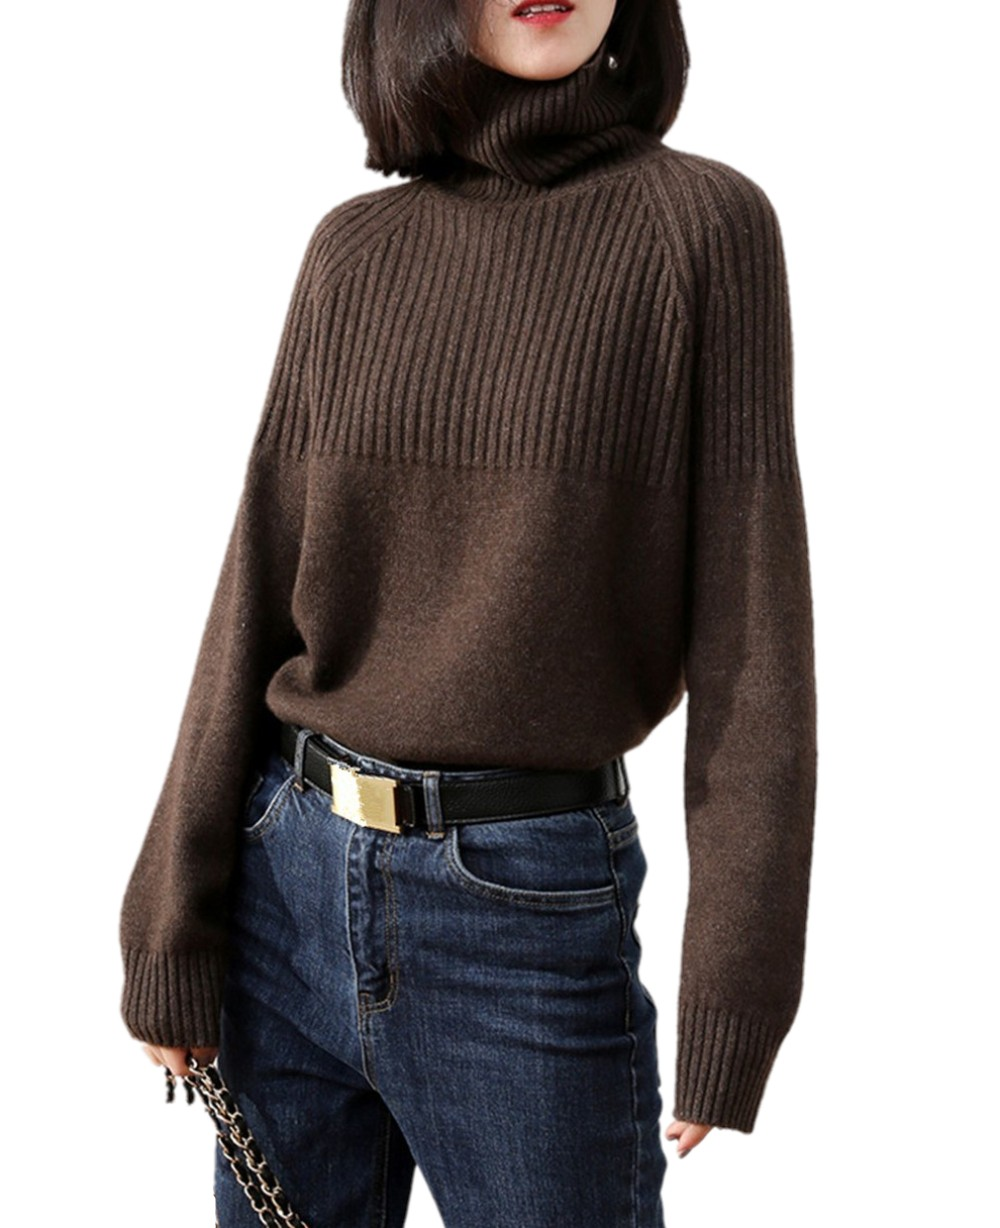 Tailor Sheep Cashmere Sweater Women Long-sleeved Thickening Pullover Loose Oversize Turtleneck Sweater Female Warm Wool Tops